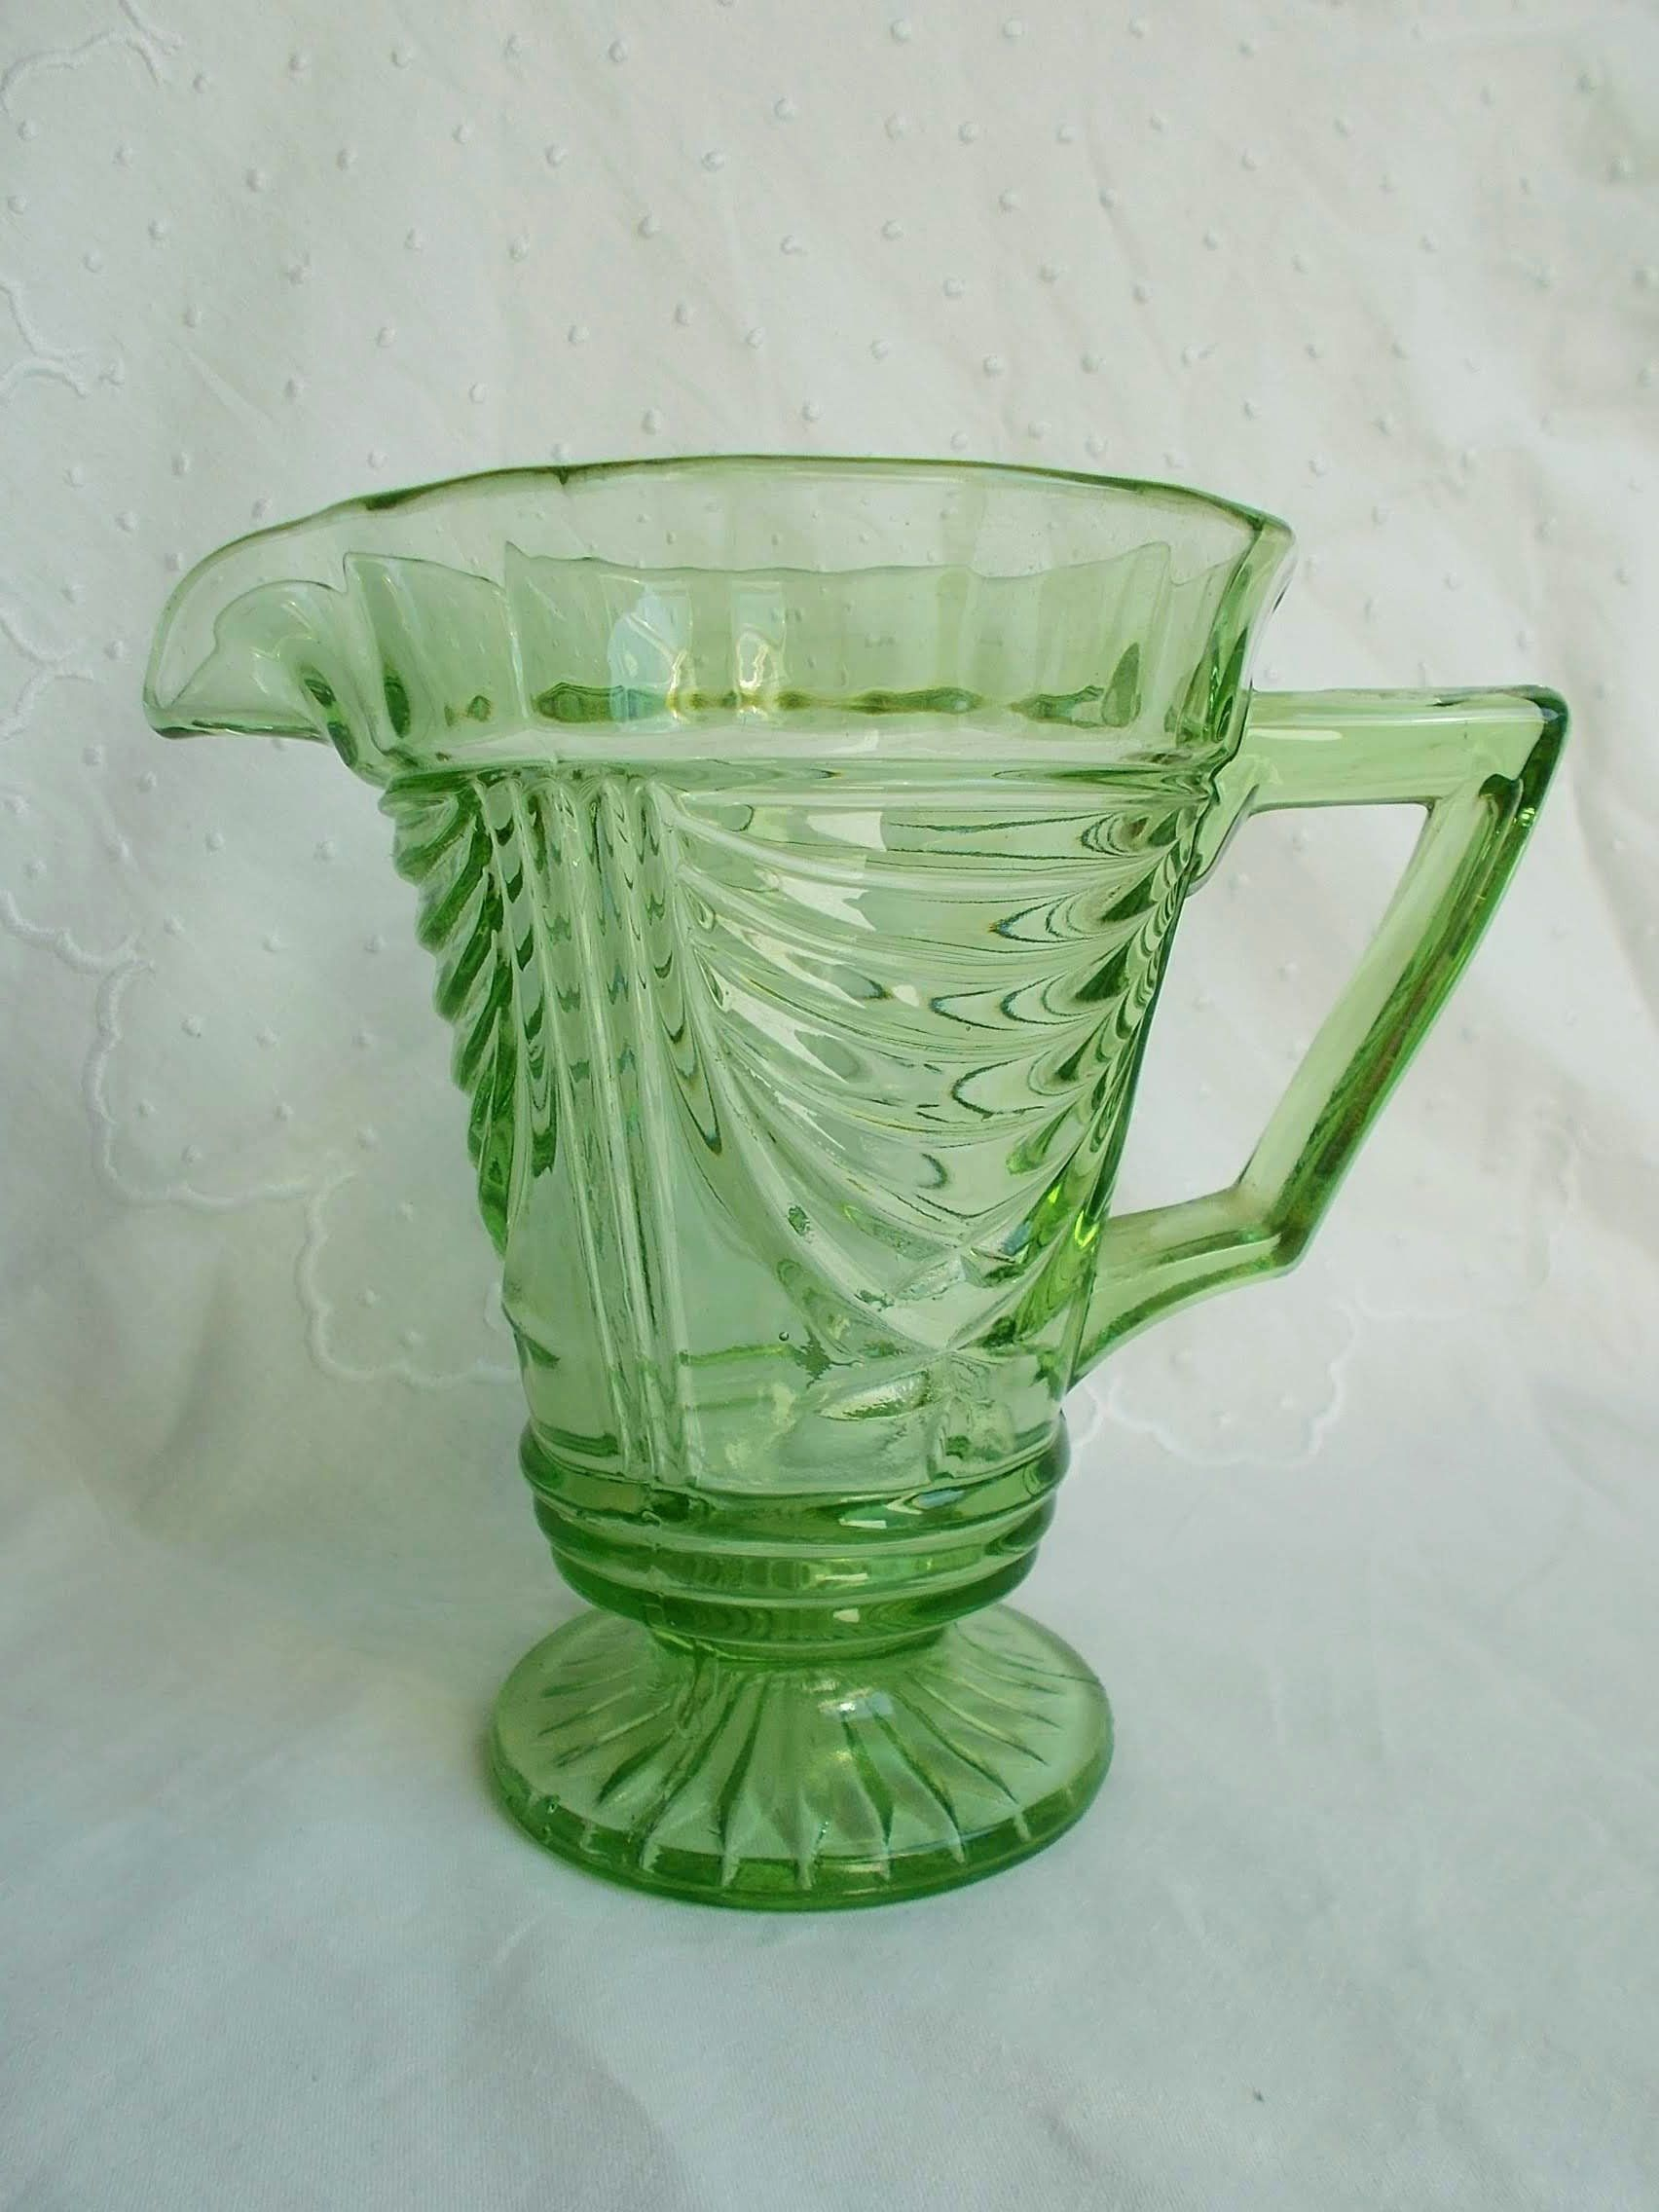 Vintage English Glass Water Jug 1930s By Sowerby Pattern Etsy Glass Water Jug Art Deco Glass Vintage Glassware